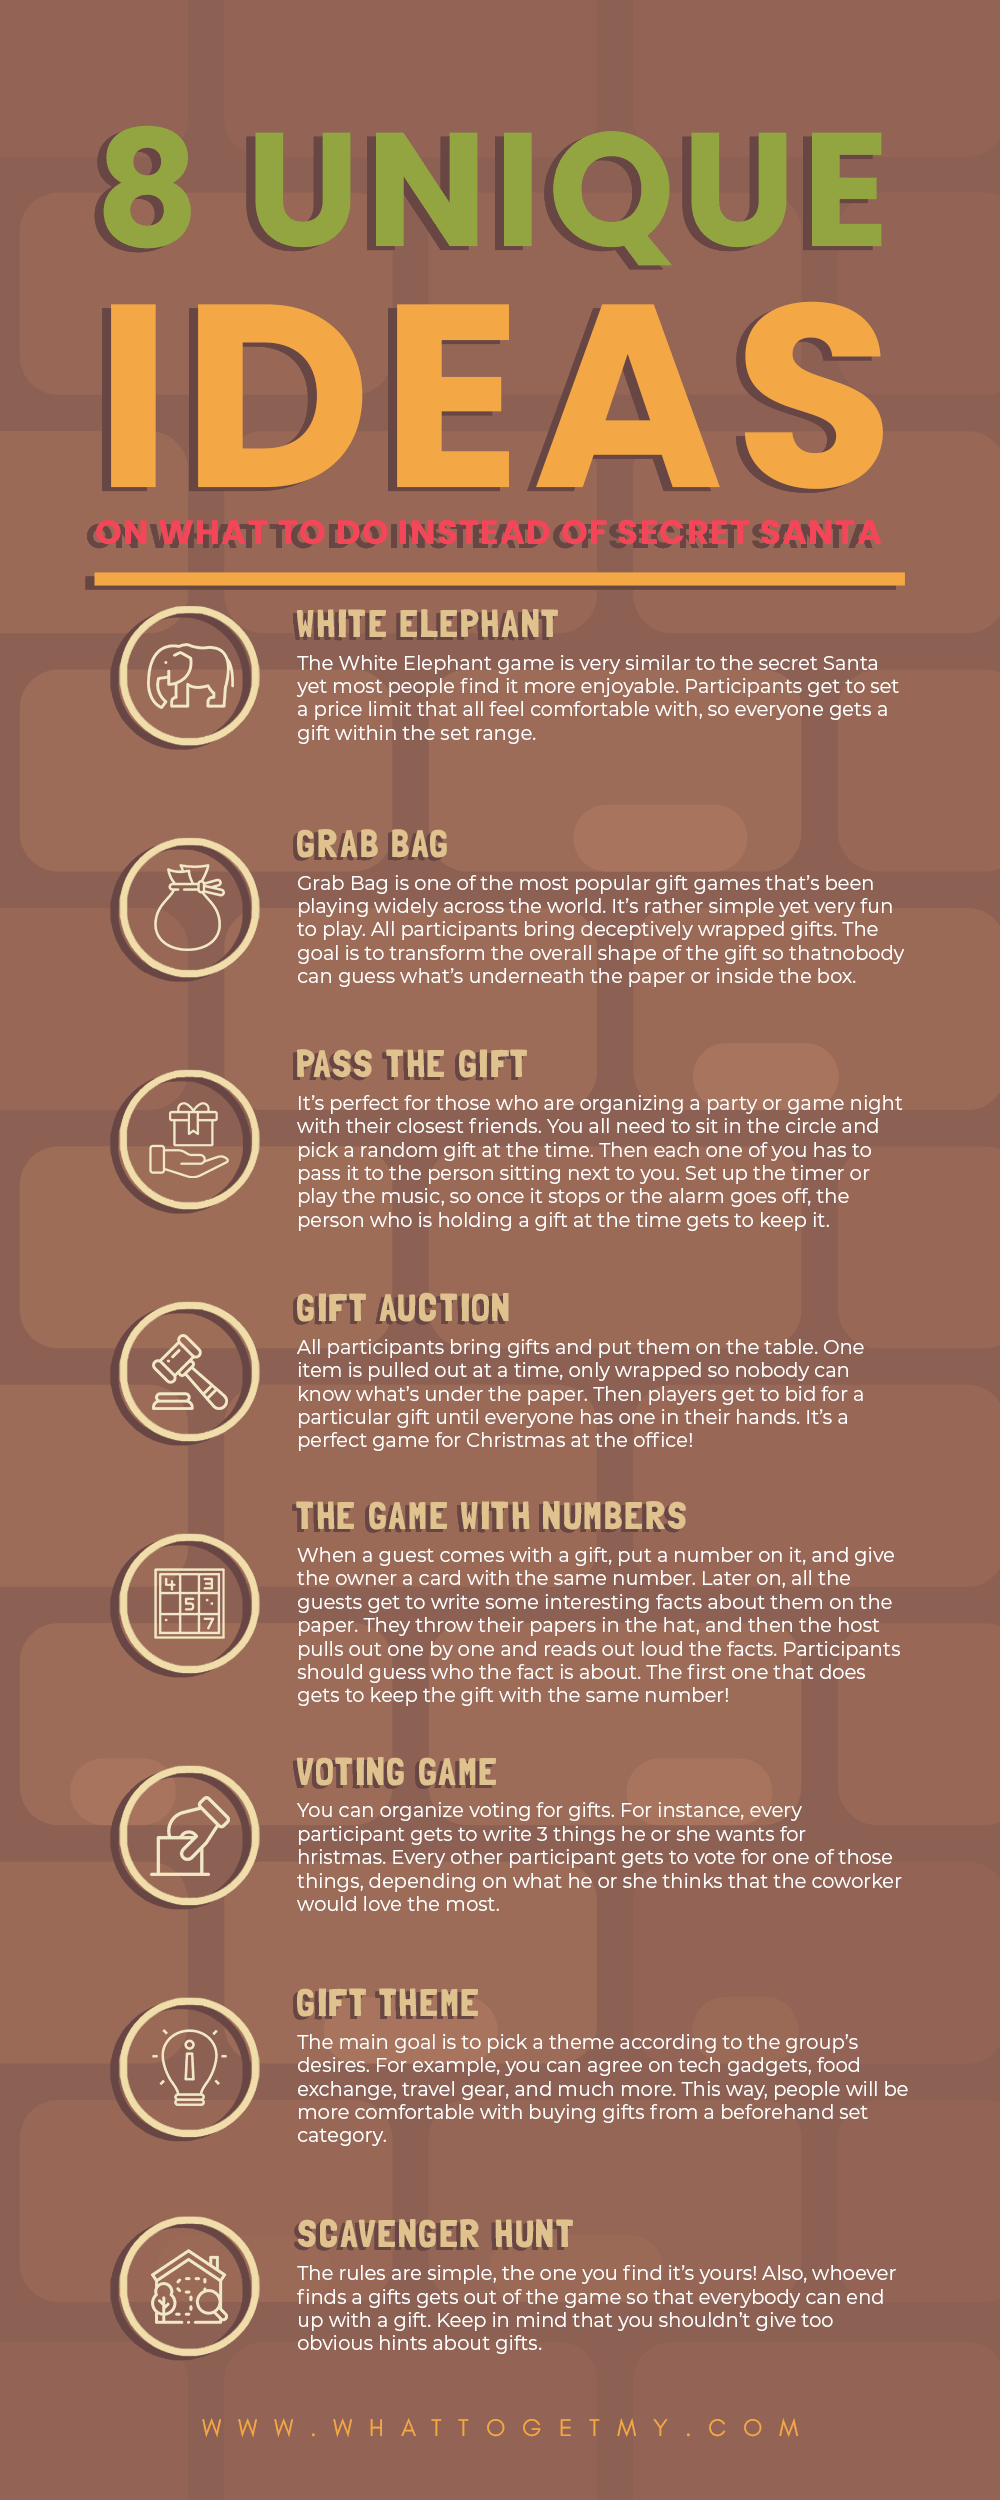 Infographic 8 Unique Ideas on What to Do Instead of Secret Santa